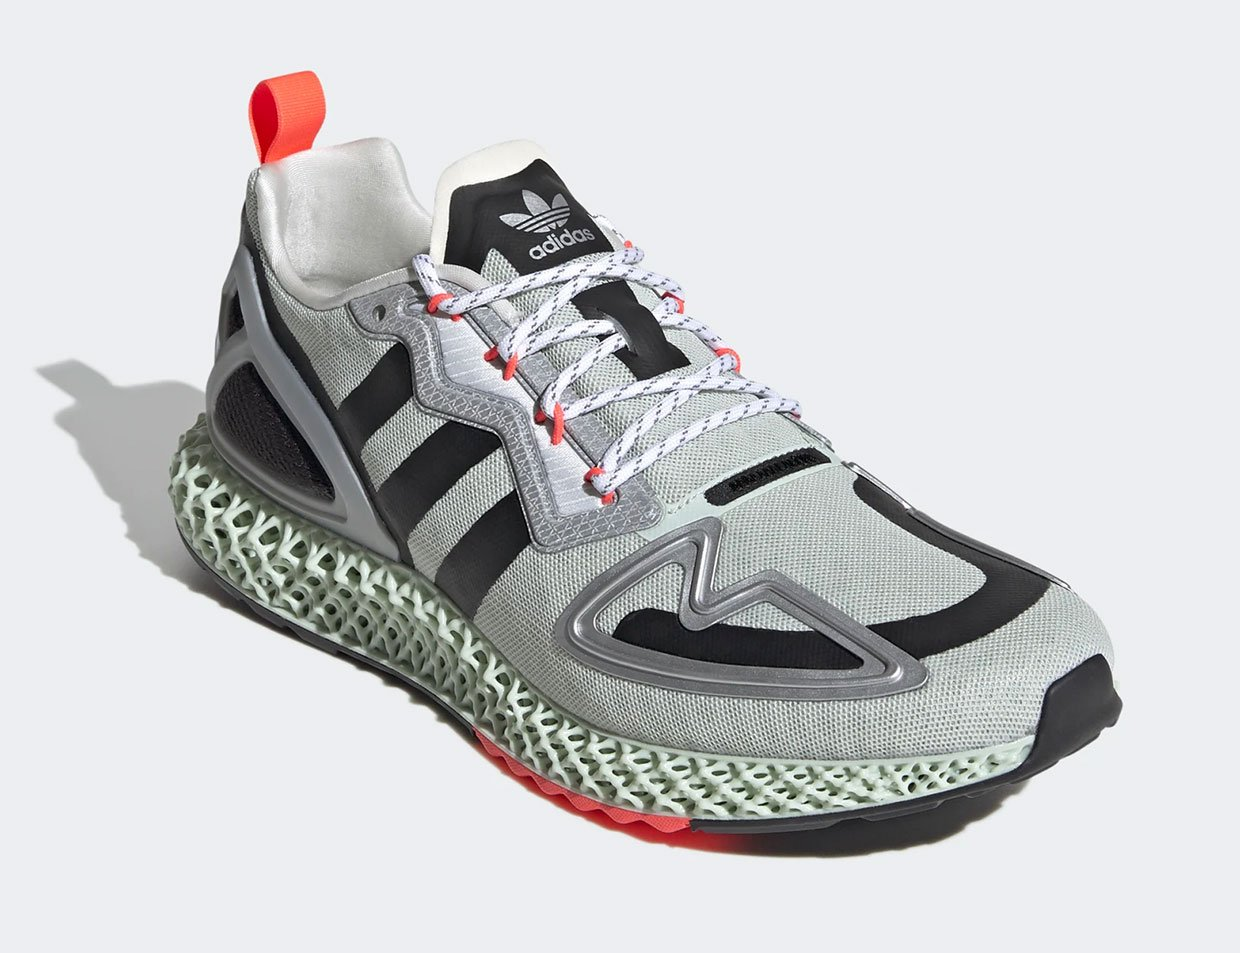 adidas ZX 2K 4D Running Shoes